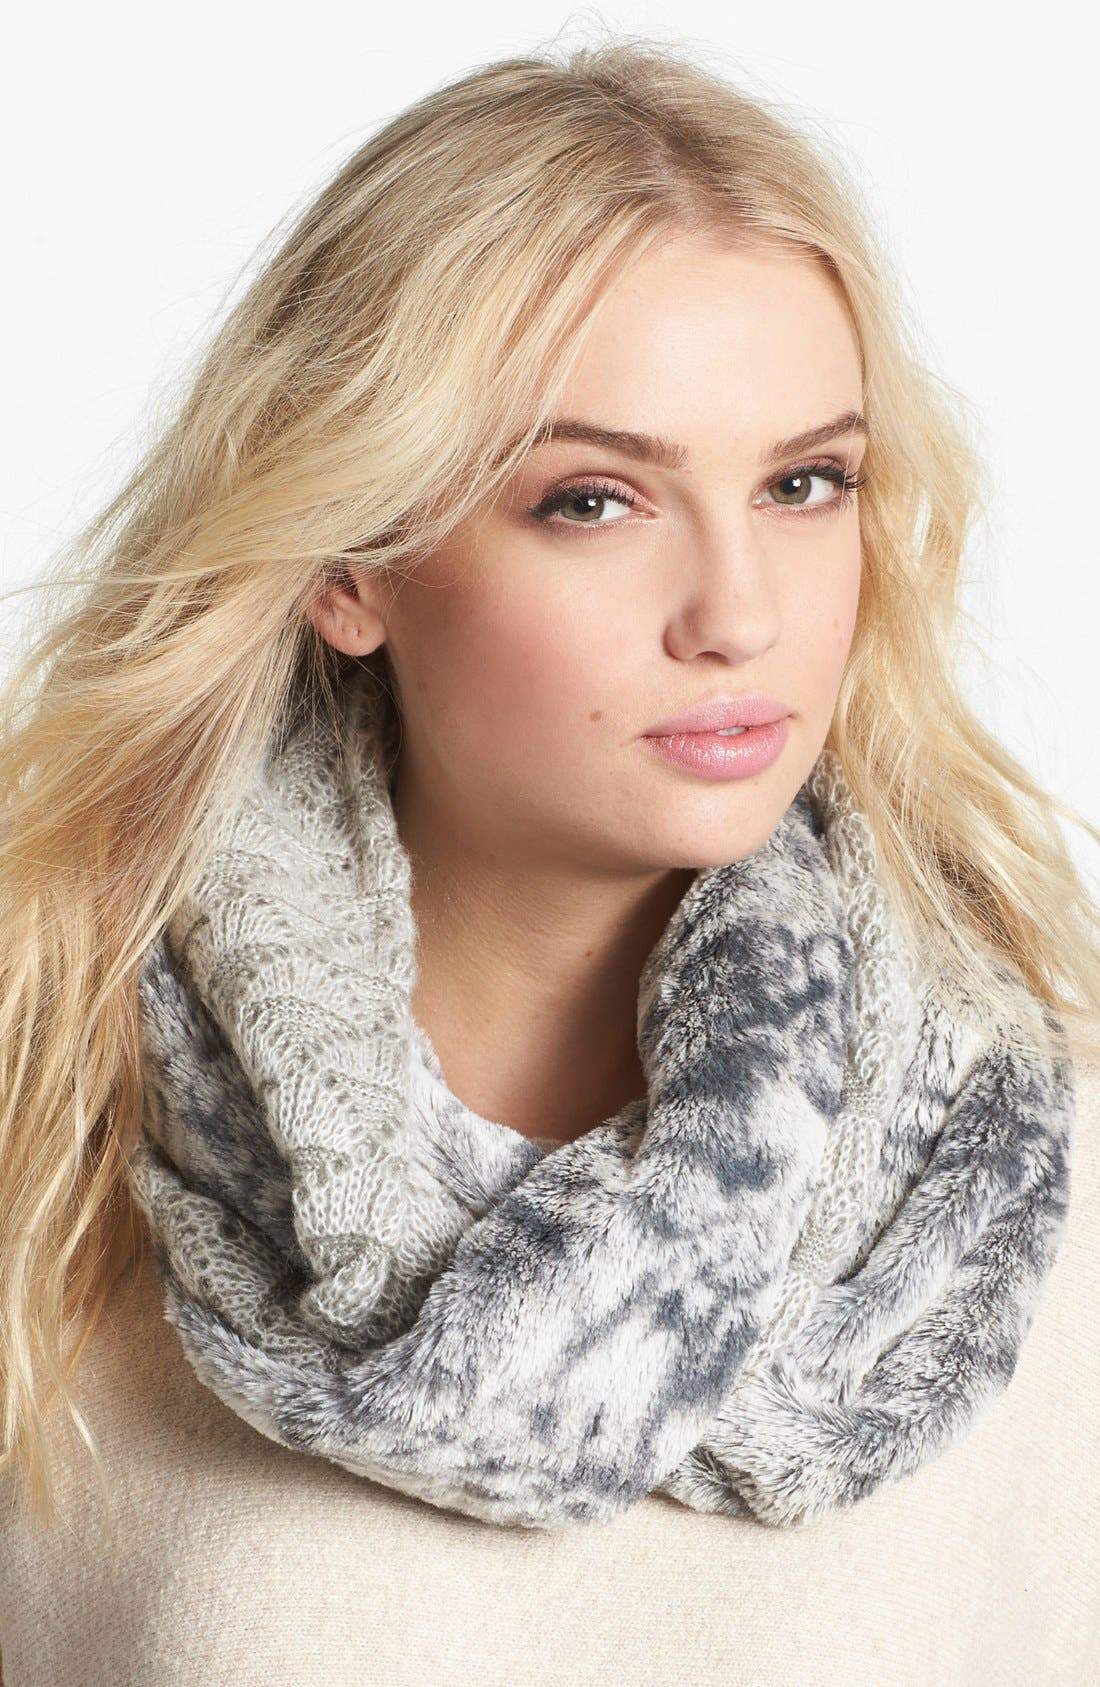 Alternate Image 1 Selected - Collection XIIX 'Shell Stitch' Knit Infinity Scarf with Faux Fur